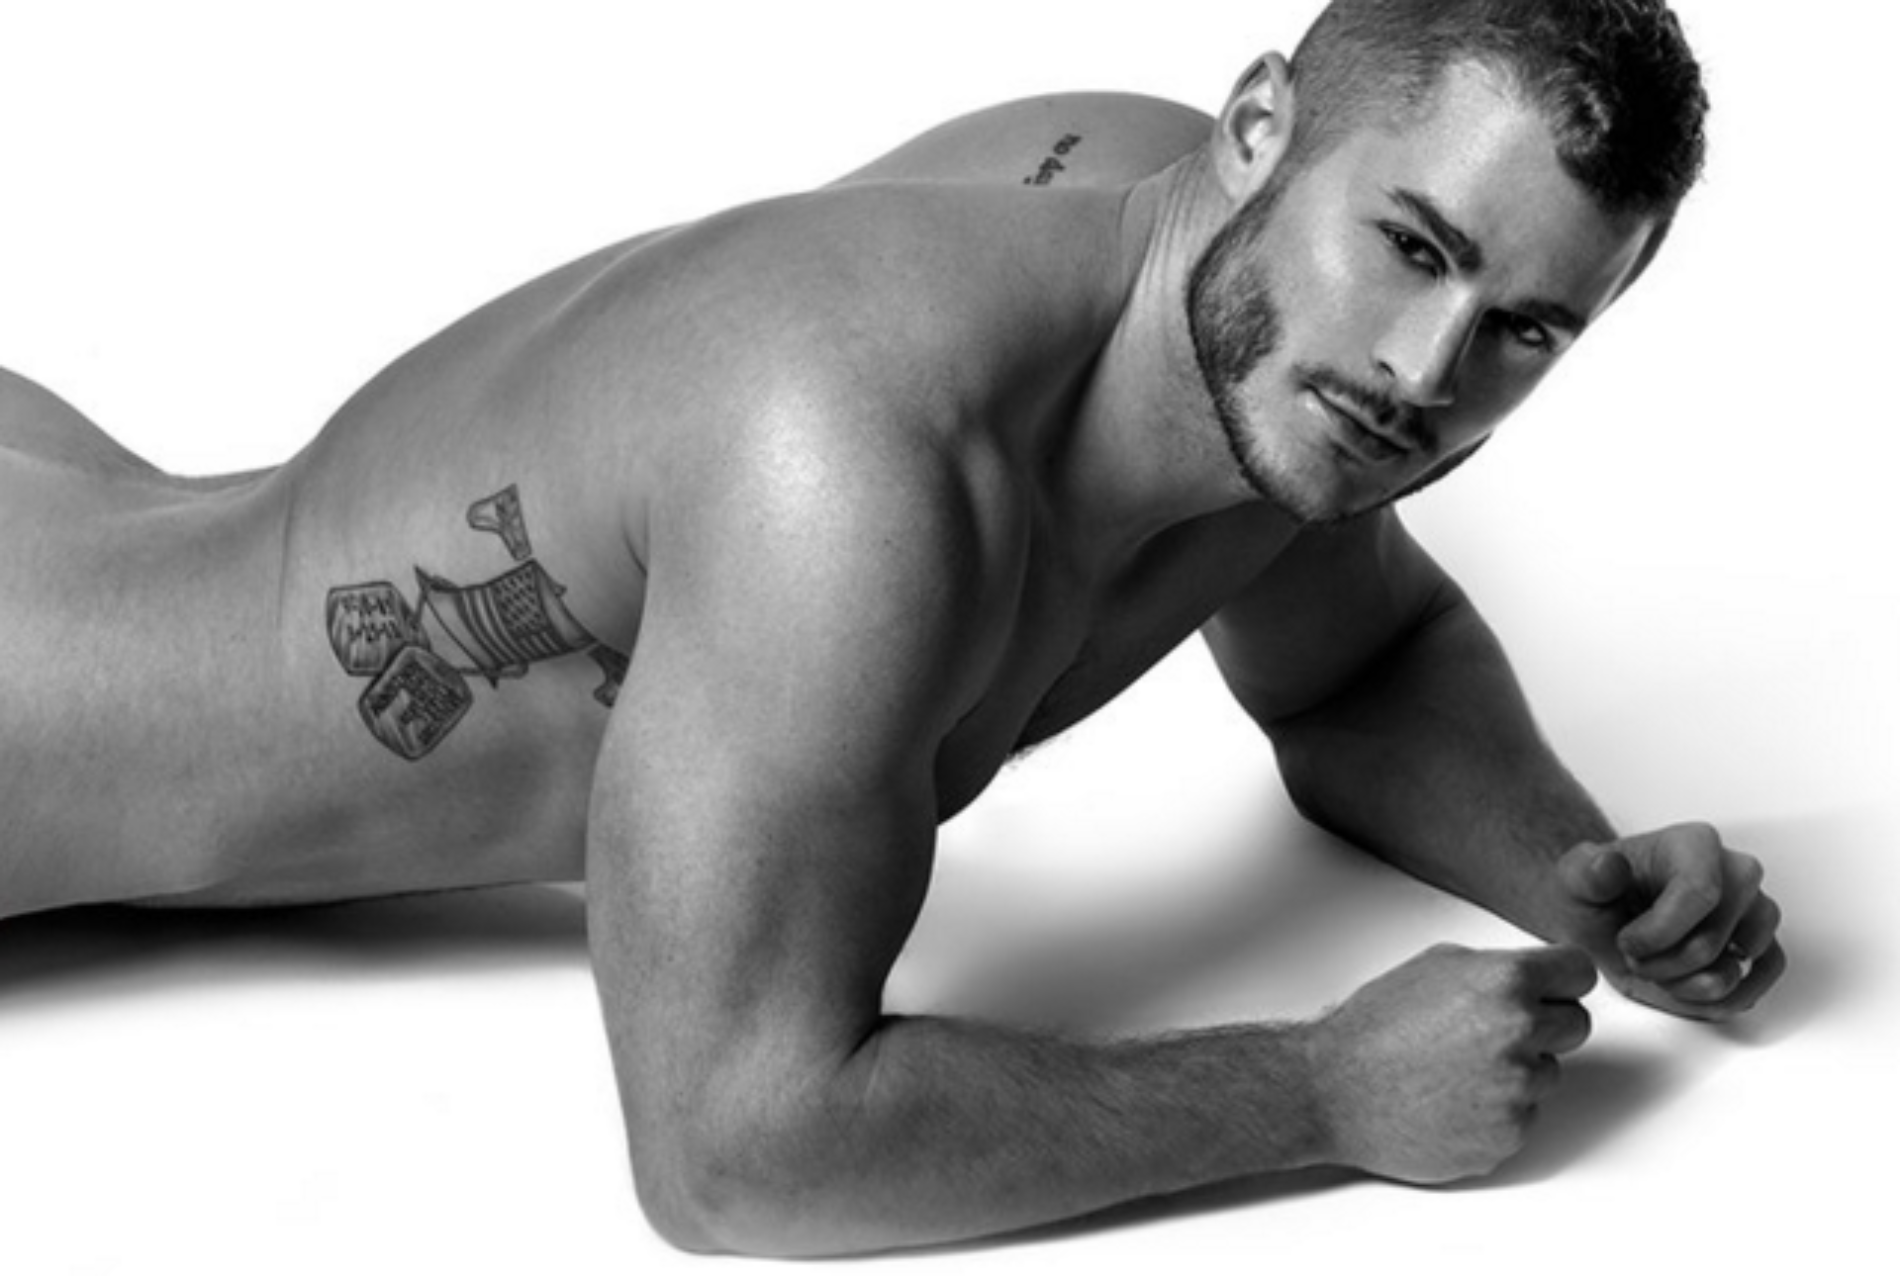 Model/Reality star Austin Armacost comes out as asexual